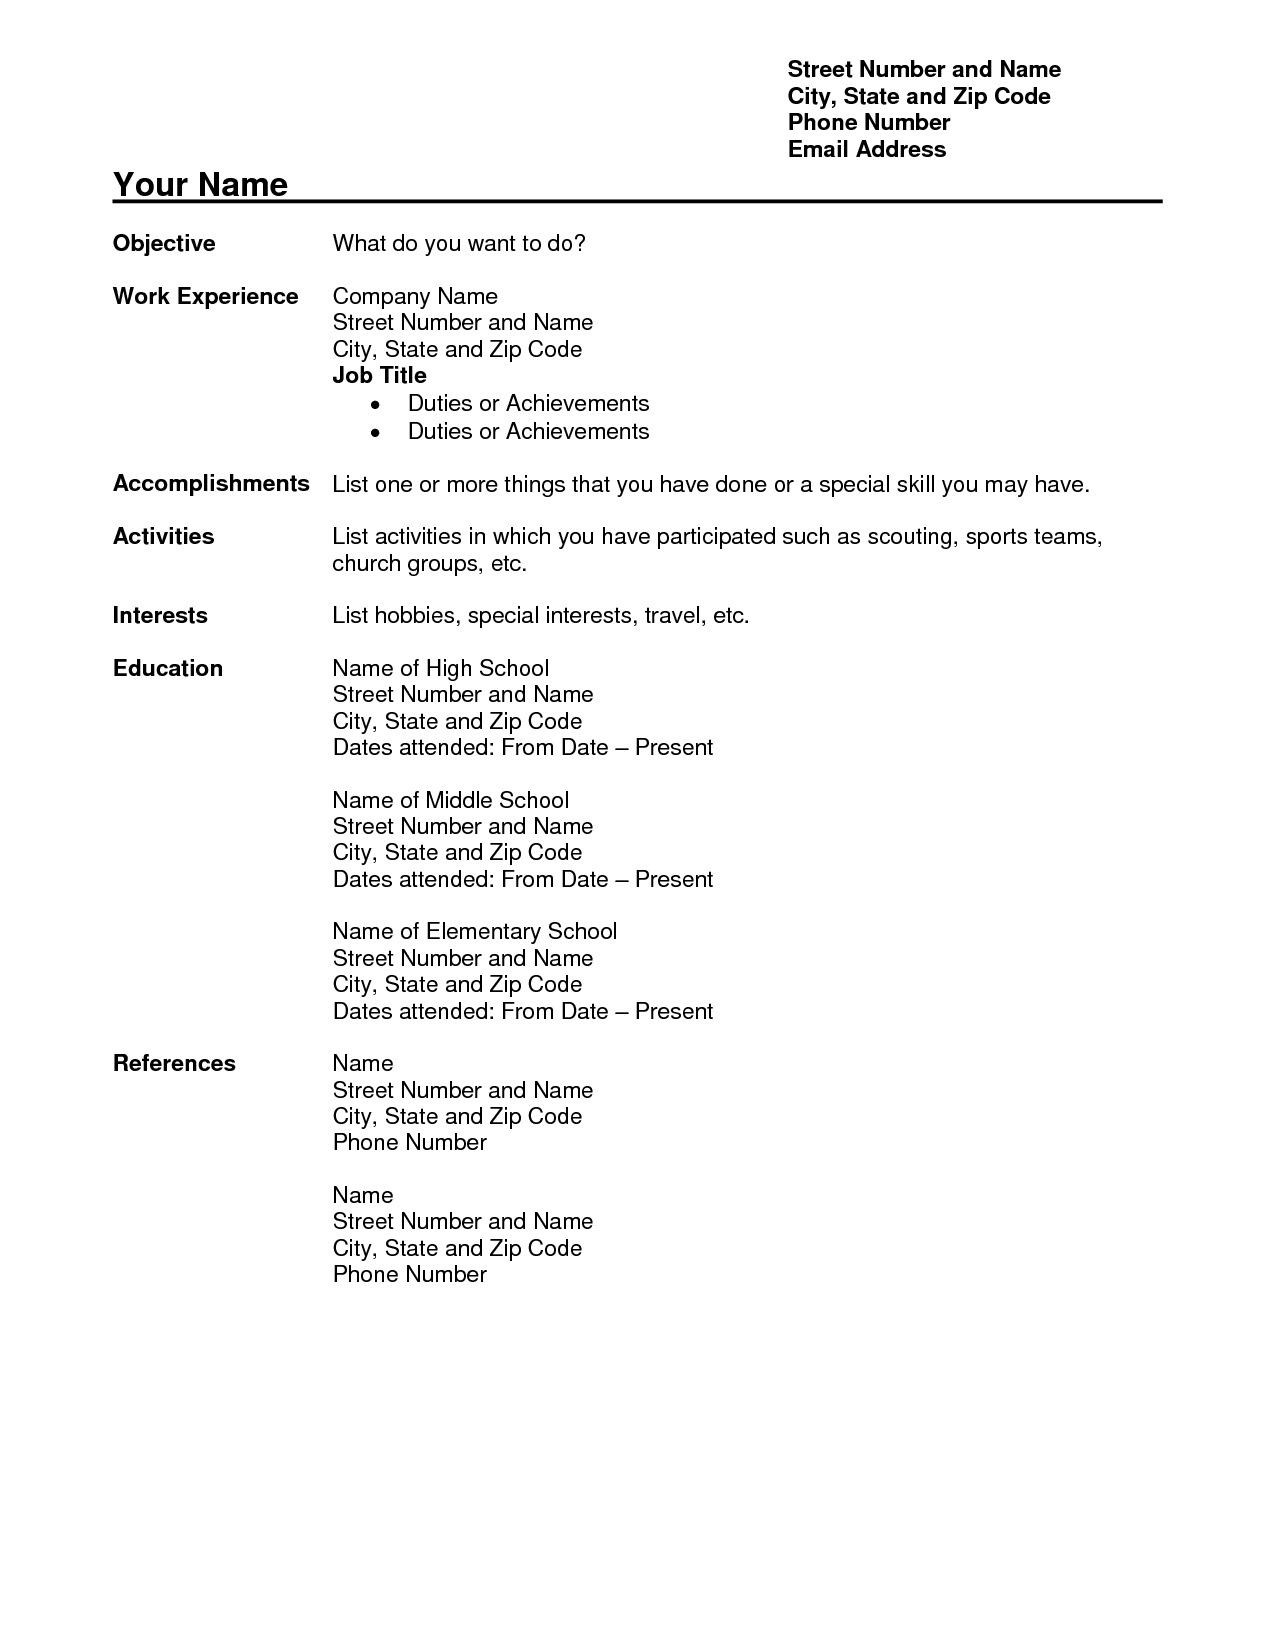 Free Teacher Resume Templates Download Free Teacher Resume Templates  Download, Free Teacher Resume Templates Microsoft  Download Free Resume Templates For Word